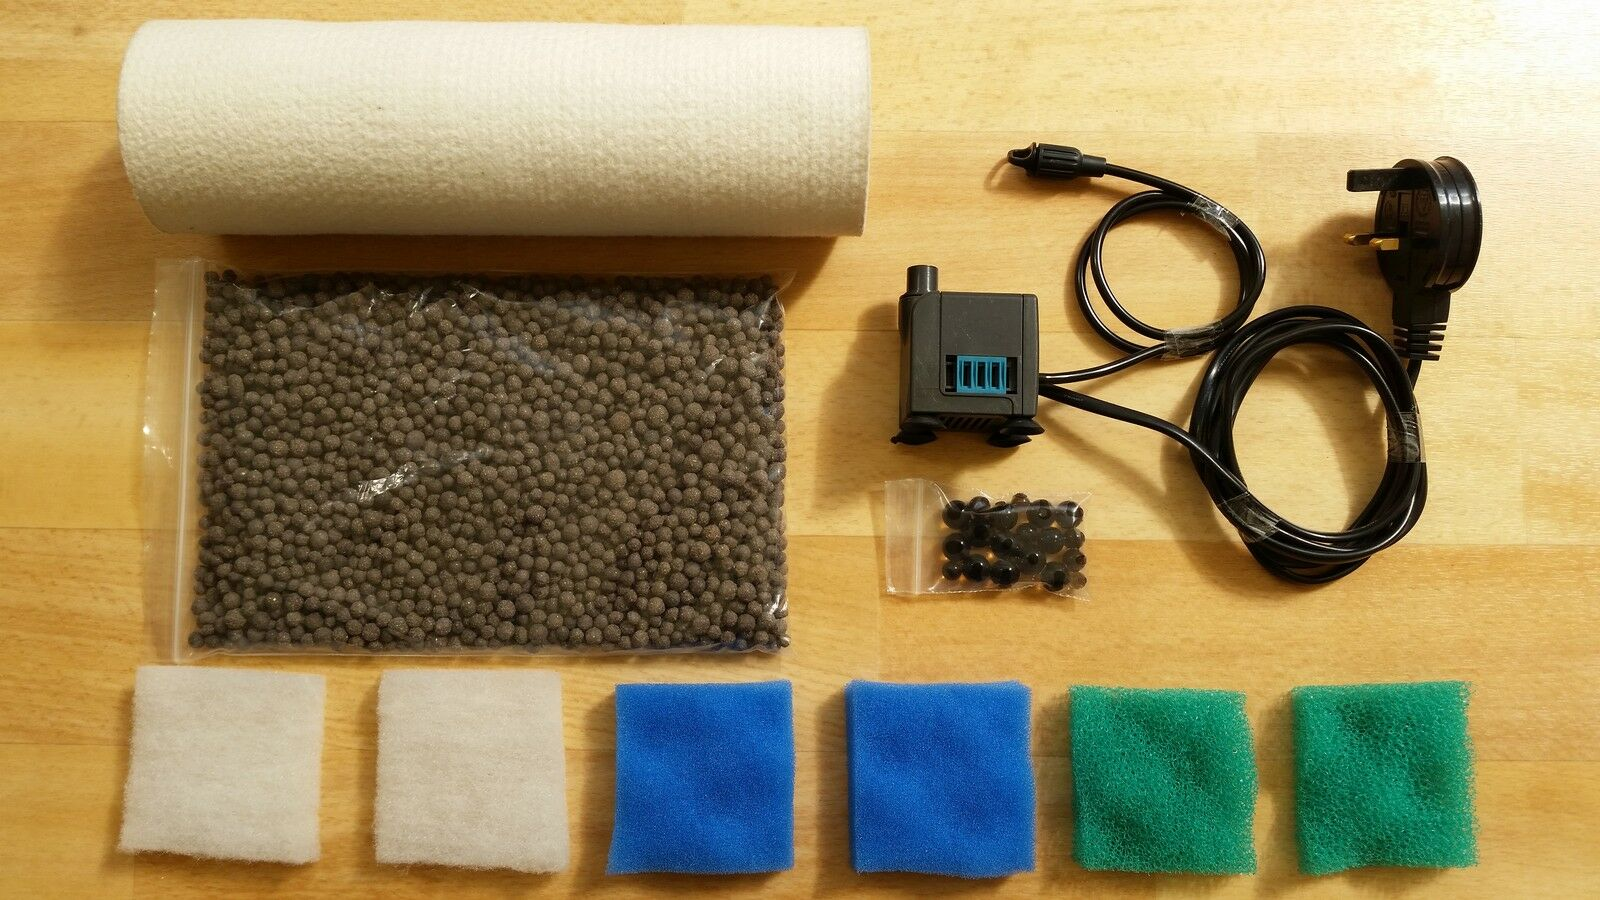 POLYESTER TUBE FILTER WITH 450 LITRE PER HOUR PUMP, FOAMS AND 500g BIOGRAVEL